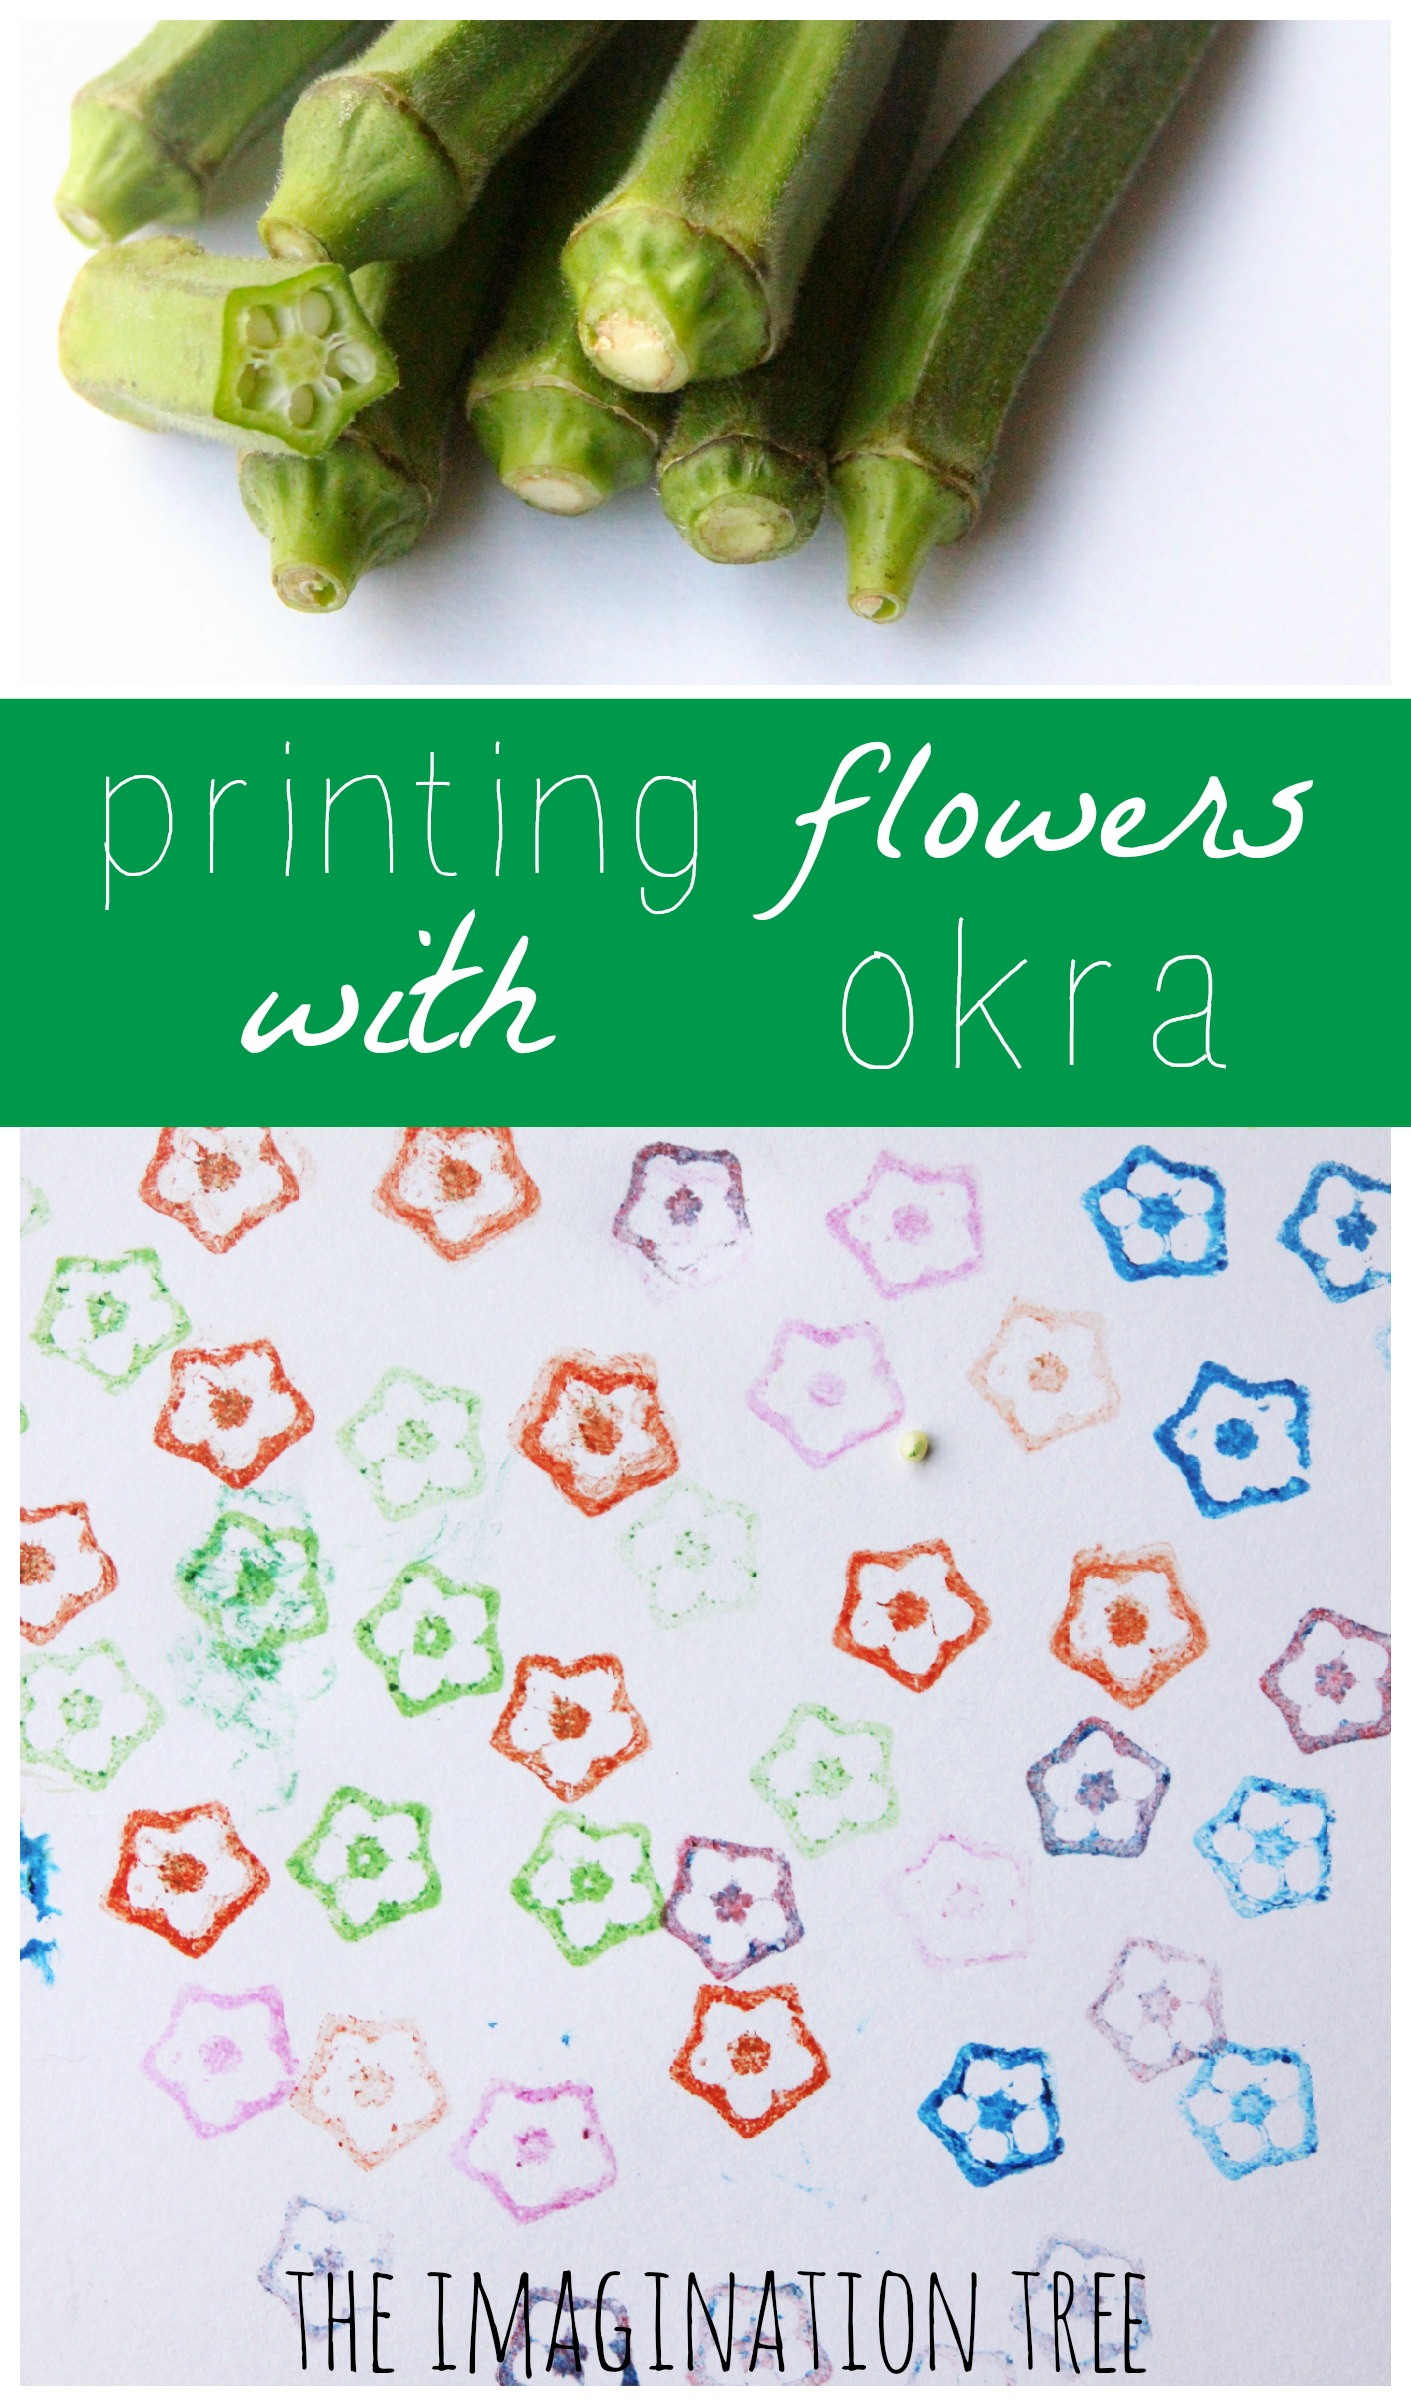 Printing Flowers with Okra - The Imagination Tree